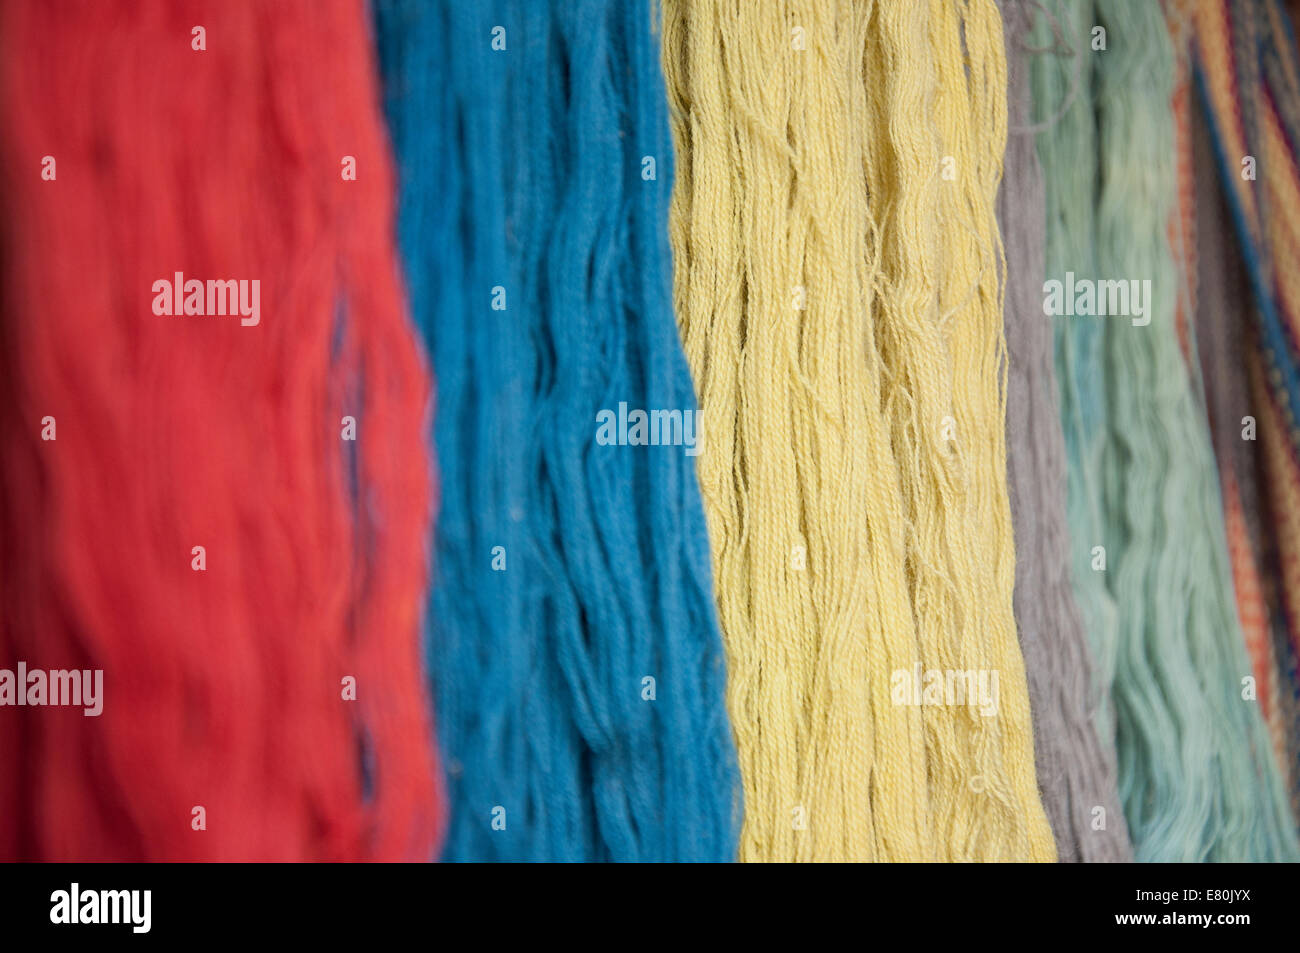 Hanging naturally dyed wool, focused on yellow skeins - Stock Image